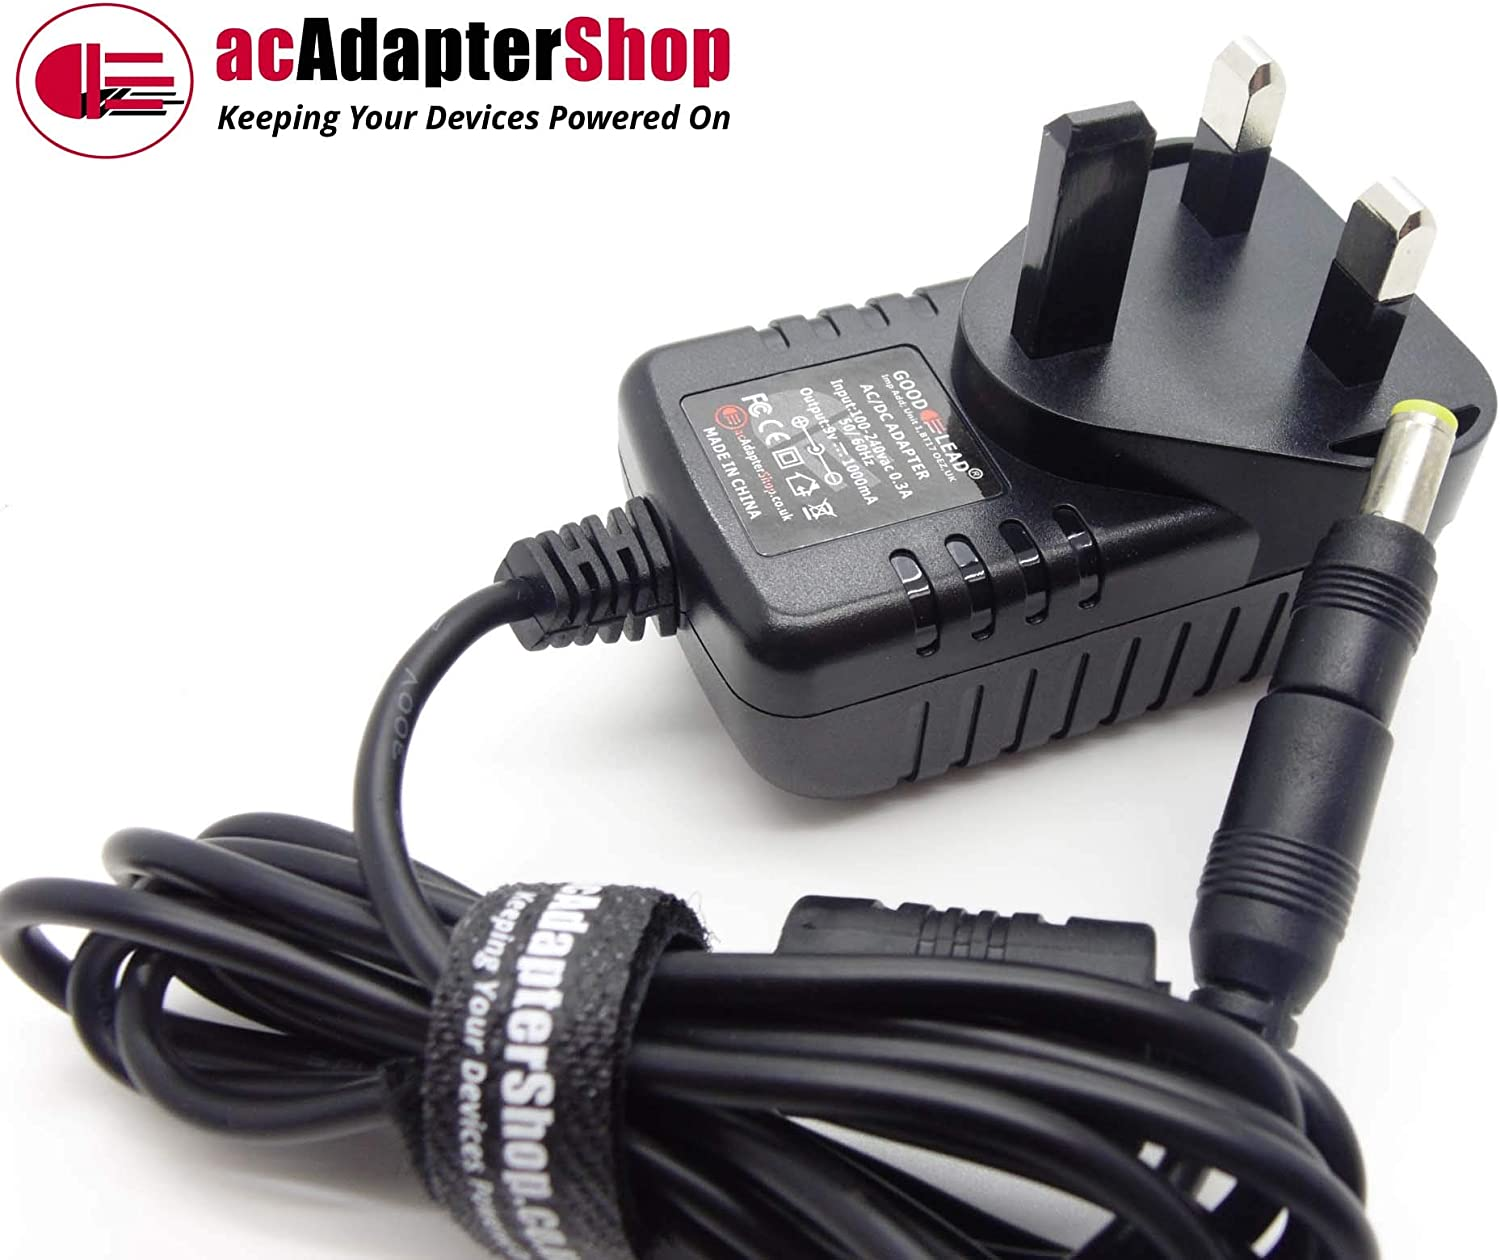 Switch Mode Power Supply Adaptor Charger GOOD LEAD 9 Volt Mains AC//DC Adapter Which Is Compatible With VENTURER PVS1370IE Device Power Lead